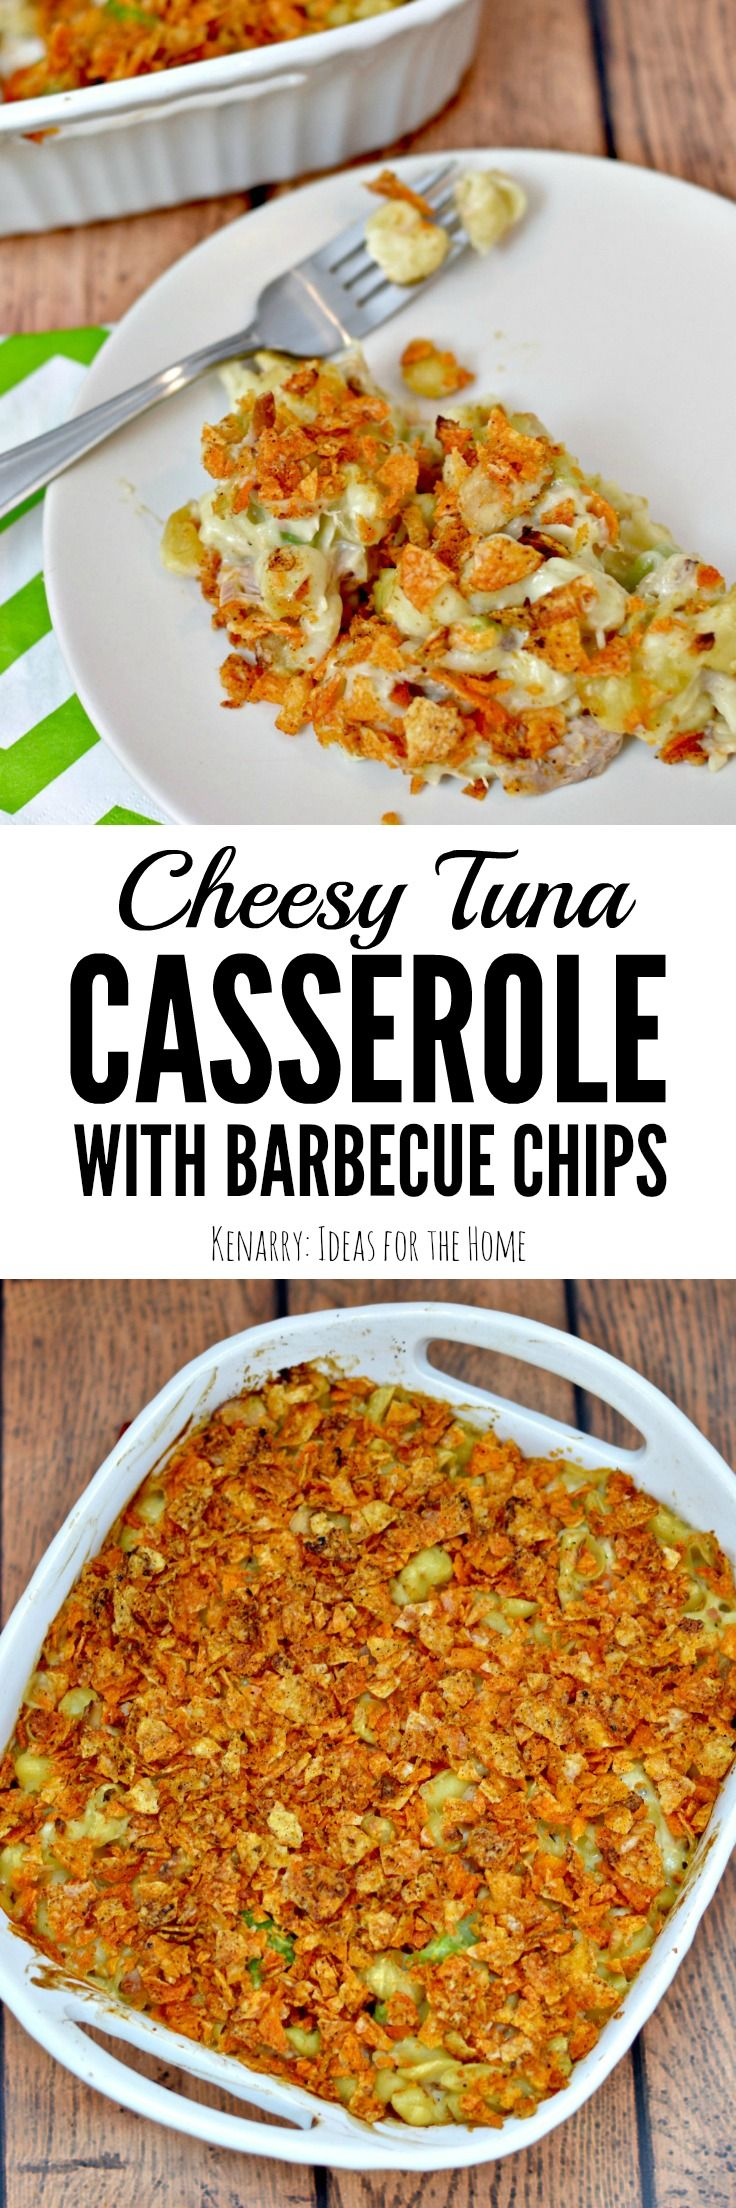 This Cheesy Tuna Casserole recipe is easy to make with shell pasta and topped with crushed barbecue chips. It's a delicious idea for a weeknight meal.